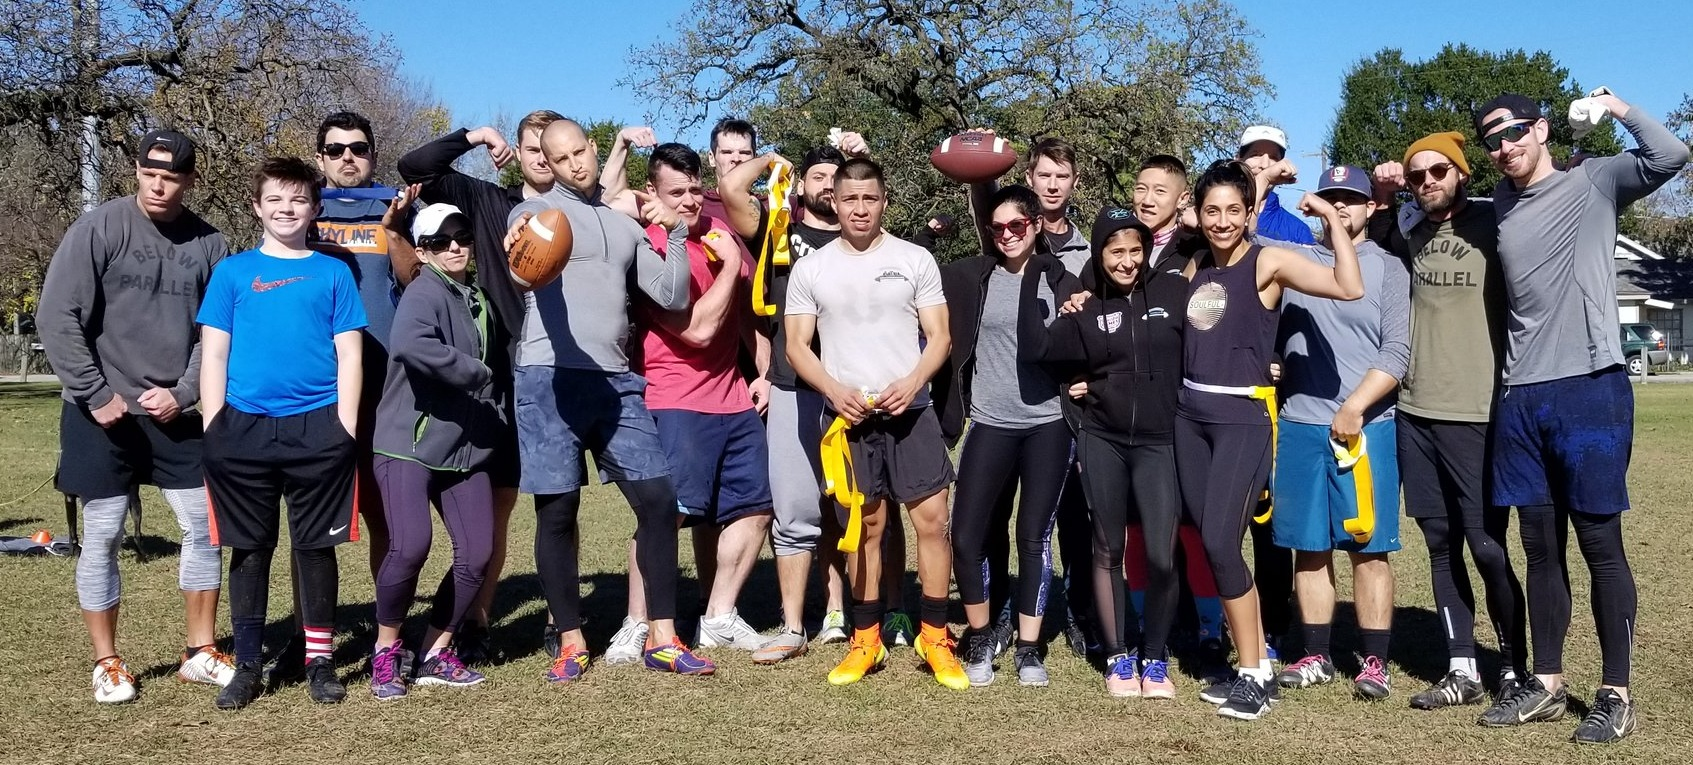 Thanks everyone for showing up for our Park WOD and Flag Football Game with CrossFit Be Someone. It was a lot of fun and expect more of this in the future!